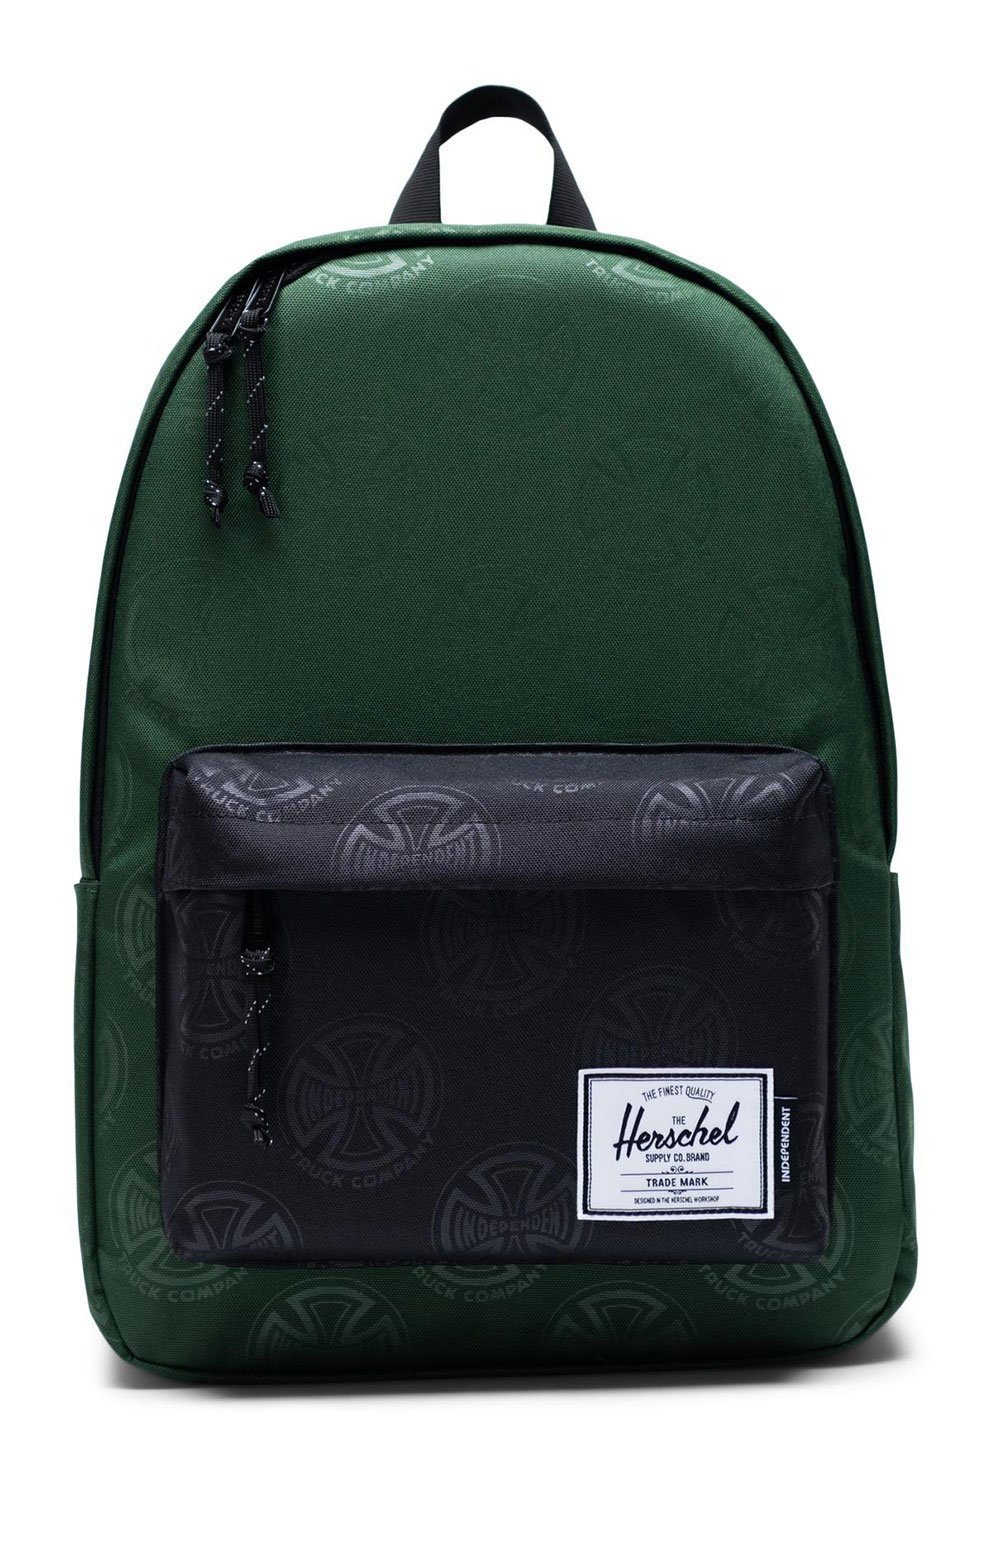 Classic XL Backpack - Independent Multi Greener Pastures